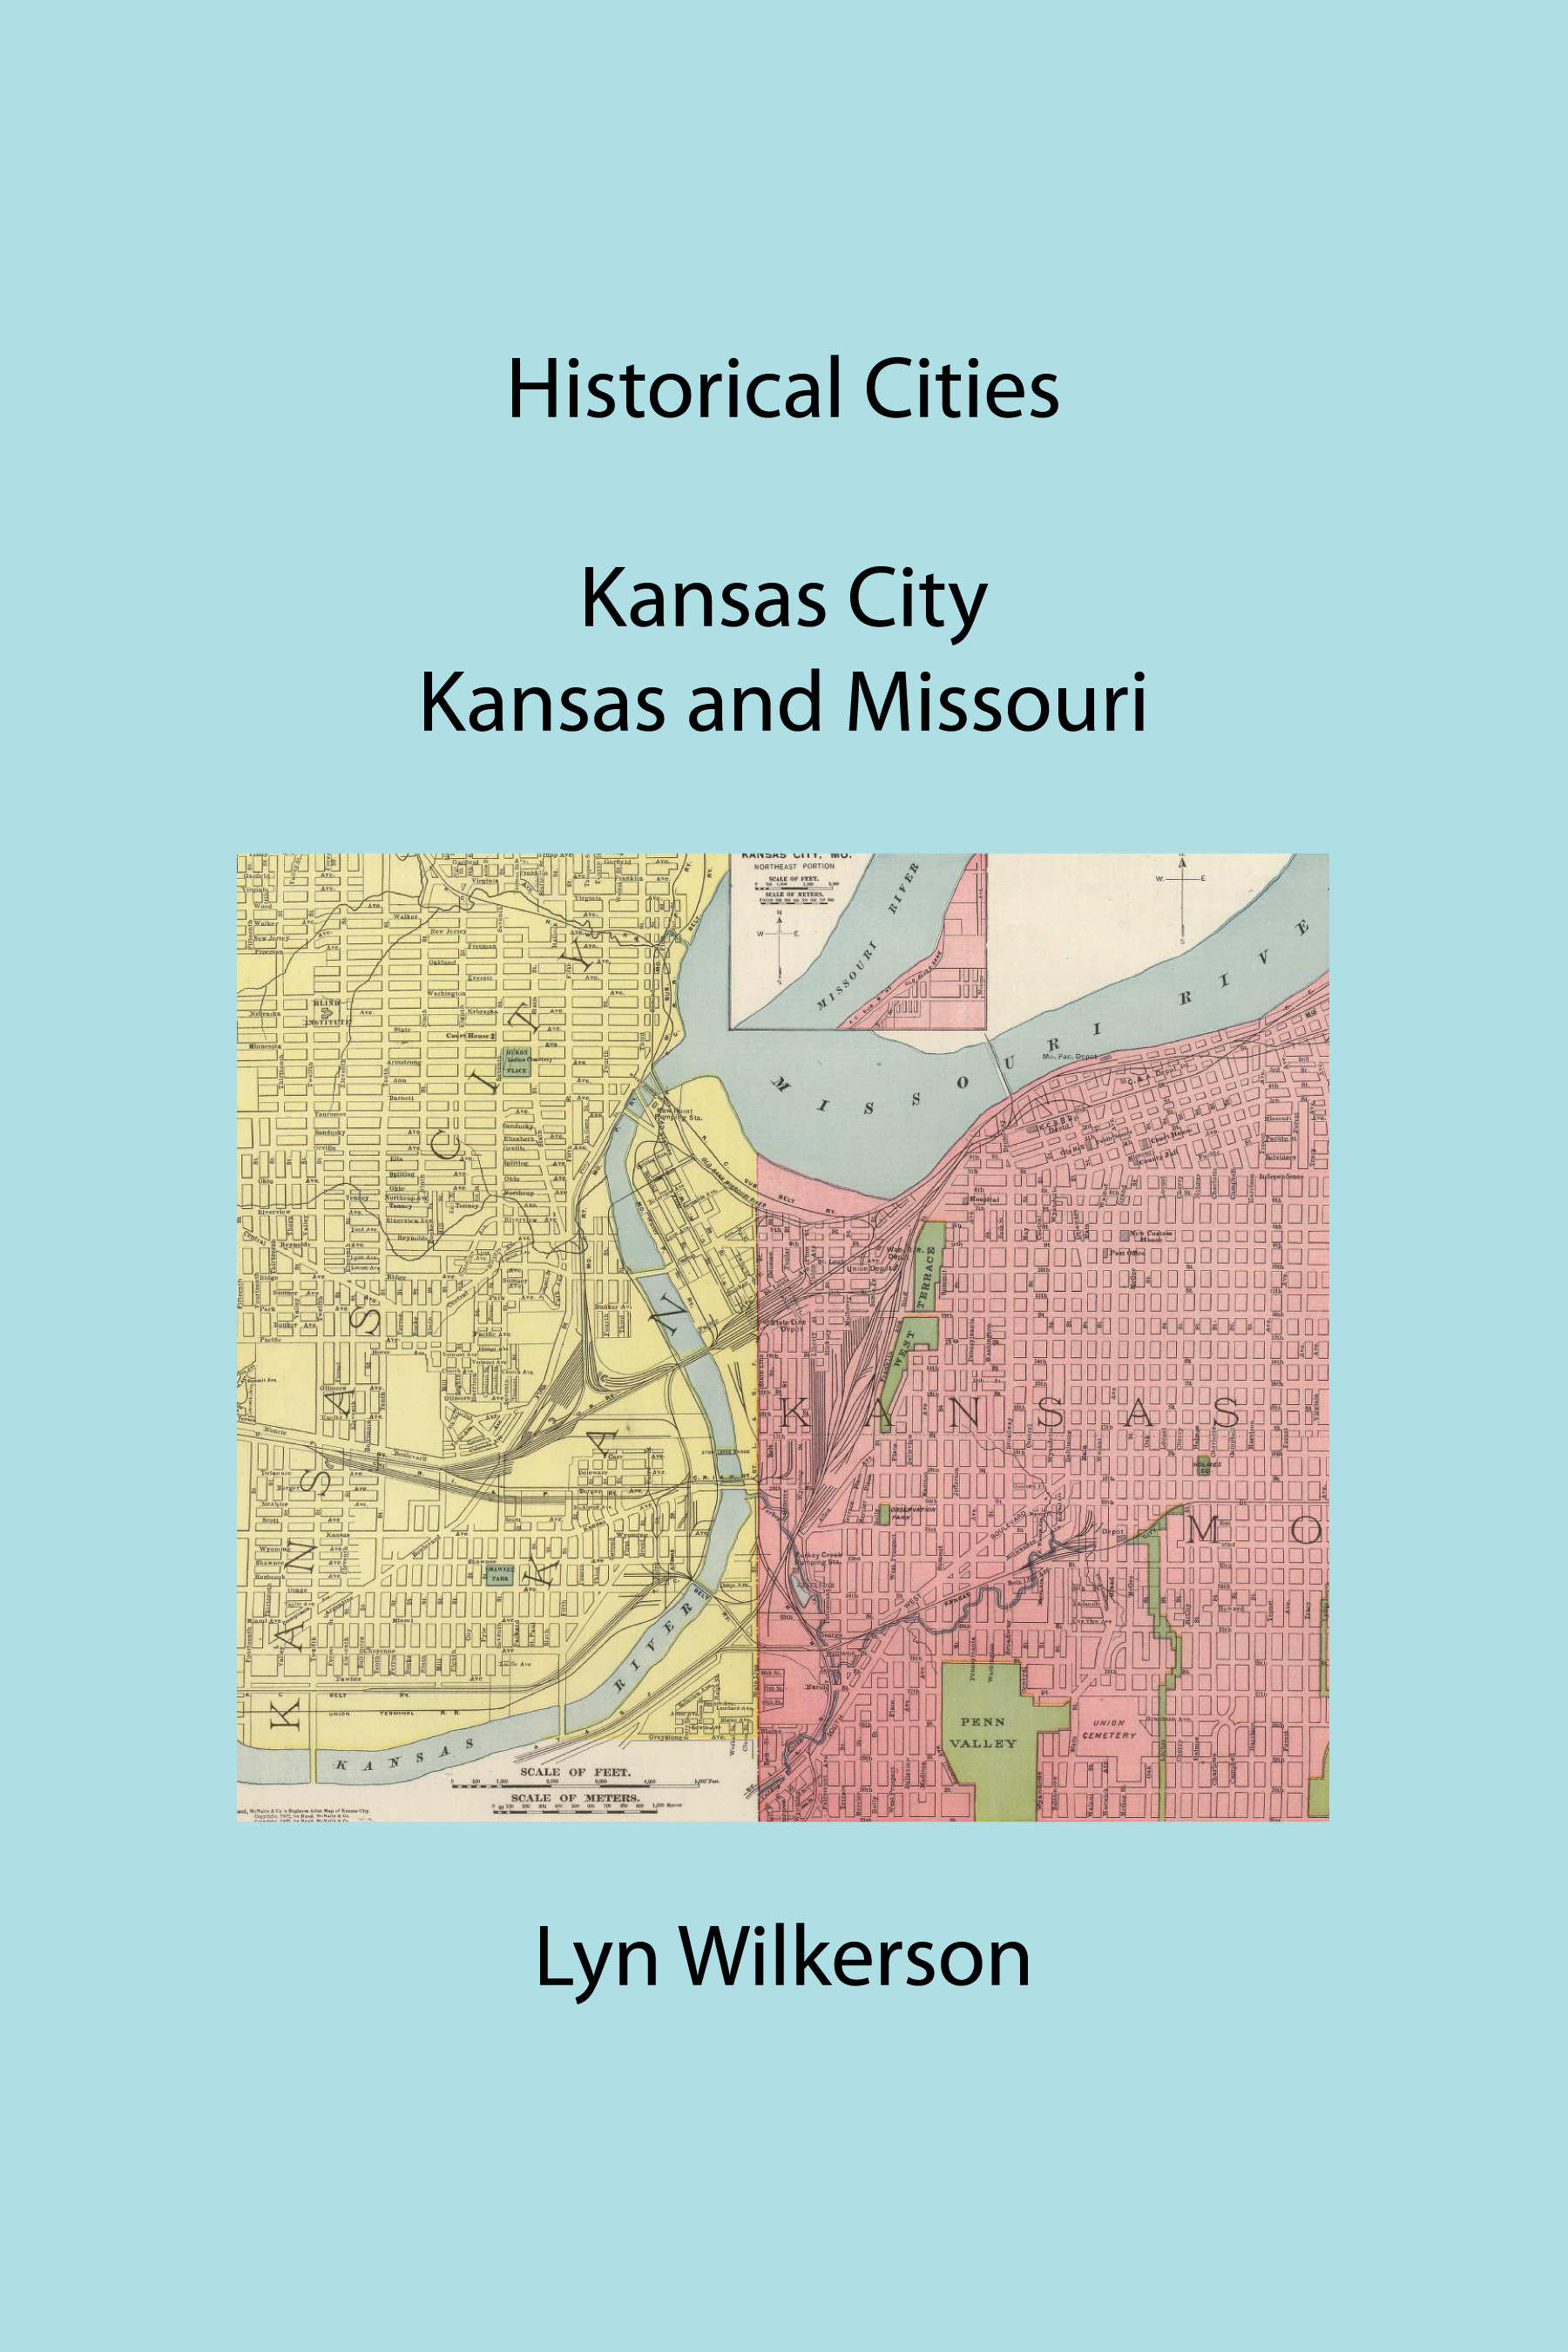 Historical Cities-Kansas City, Kansas and Missouri, an Ebook by Lyn on orlando map cities, missouri map cities, long island map cities, nebraska map cities, arizona map cities, philadelphia map cities, maryland map cities, san diego map cities, oklahoma map cities, idaho map cities, minnesota map cities, virginia map cities, new mexico map cities, columbia map cities, oregon map cities, new england map cities, spokane map cities, nevada map cities, tennessee map cities, iowa map cities,